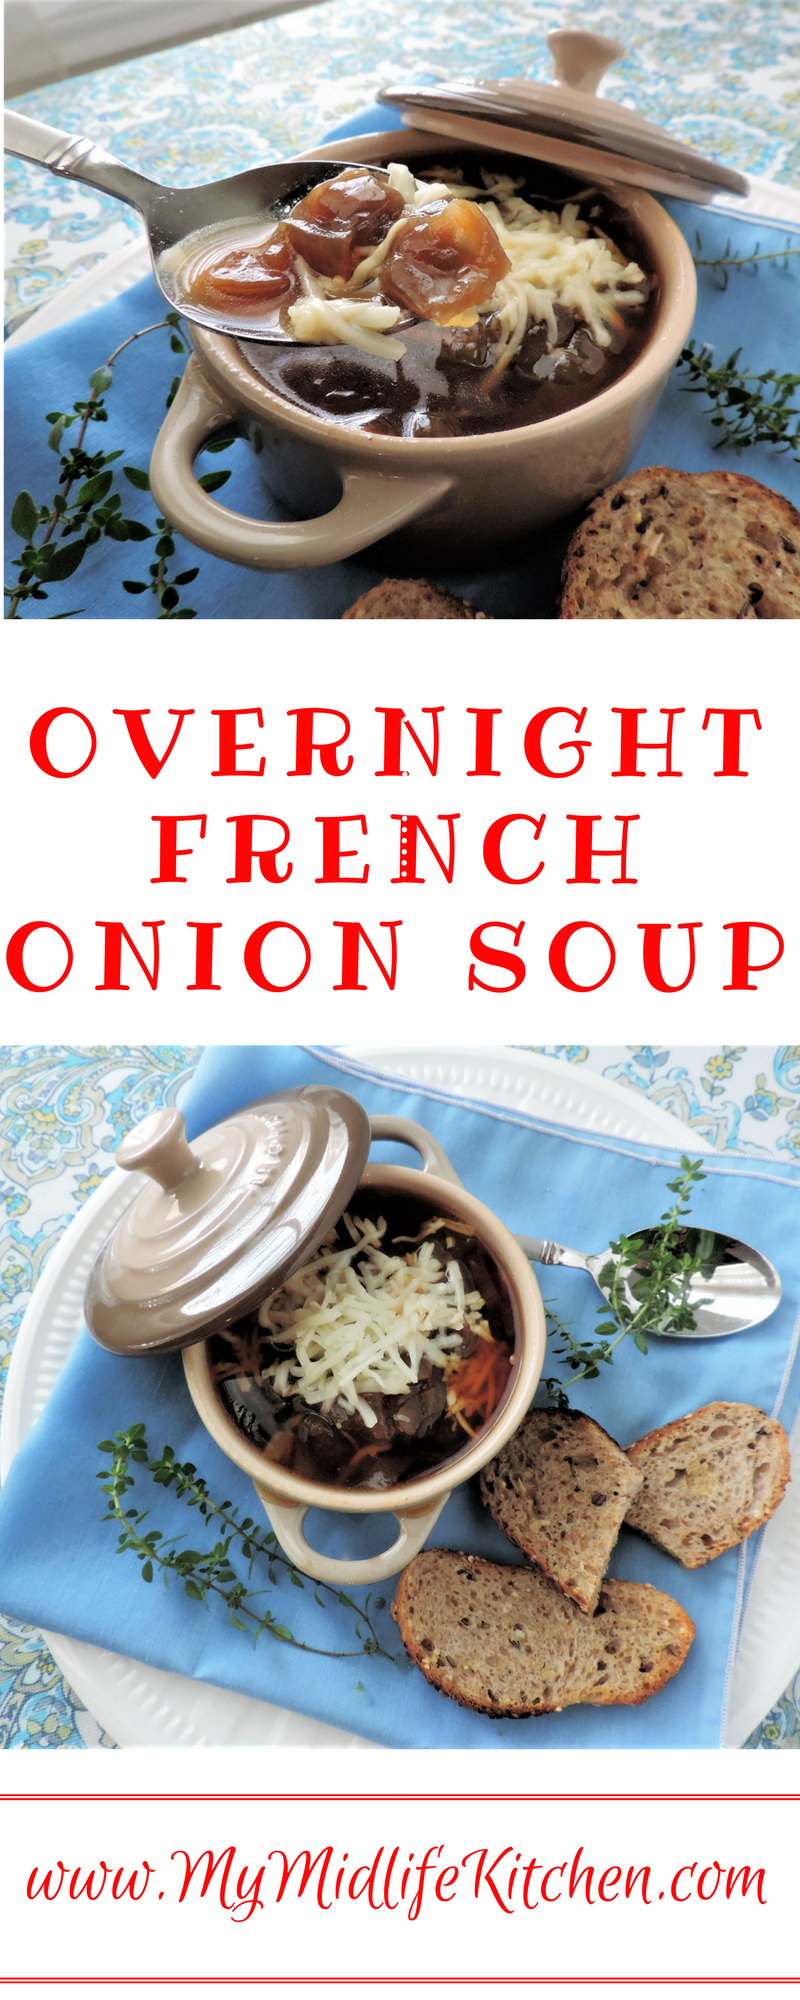 Overnight-French-Onion-Soup